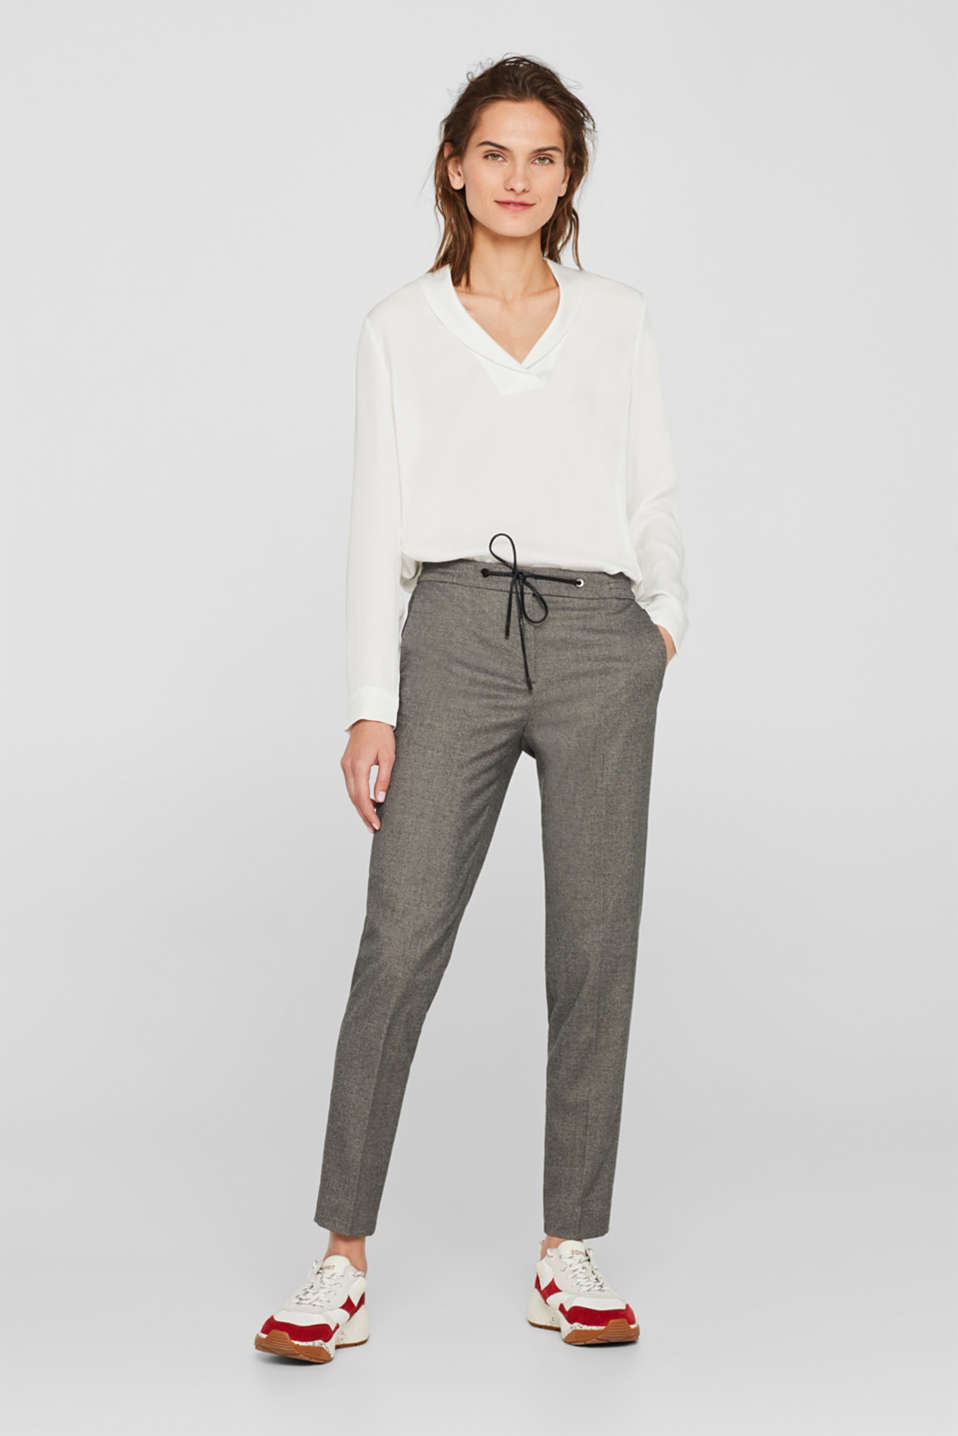 Esprit - Pantalon stretch chiné de style jogging